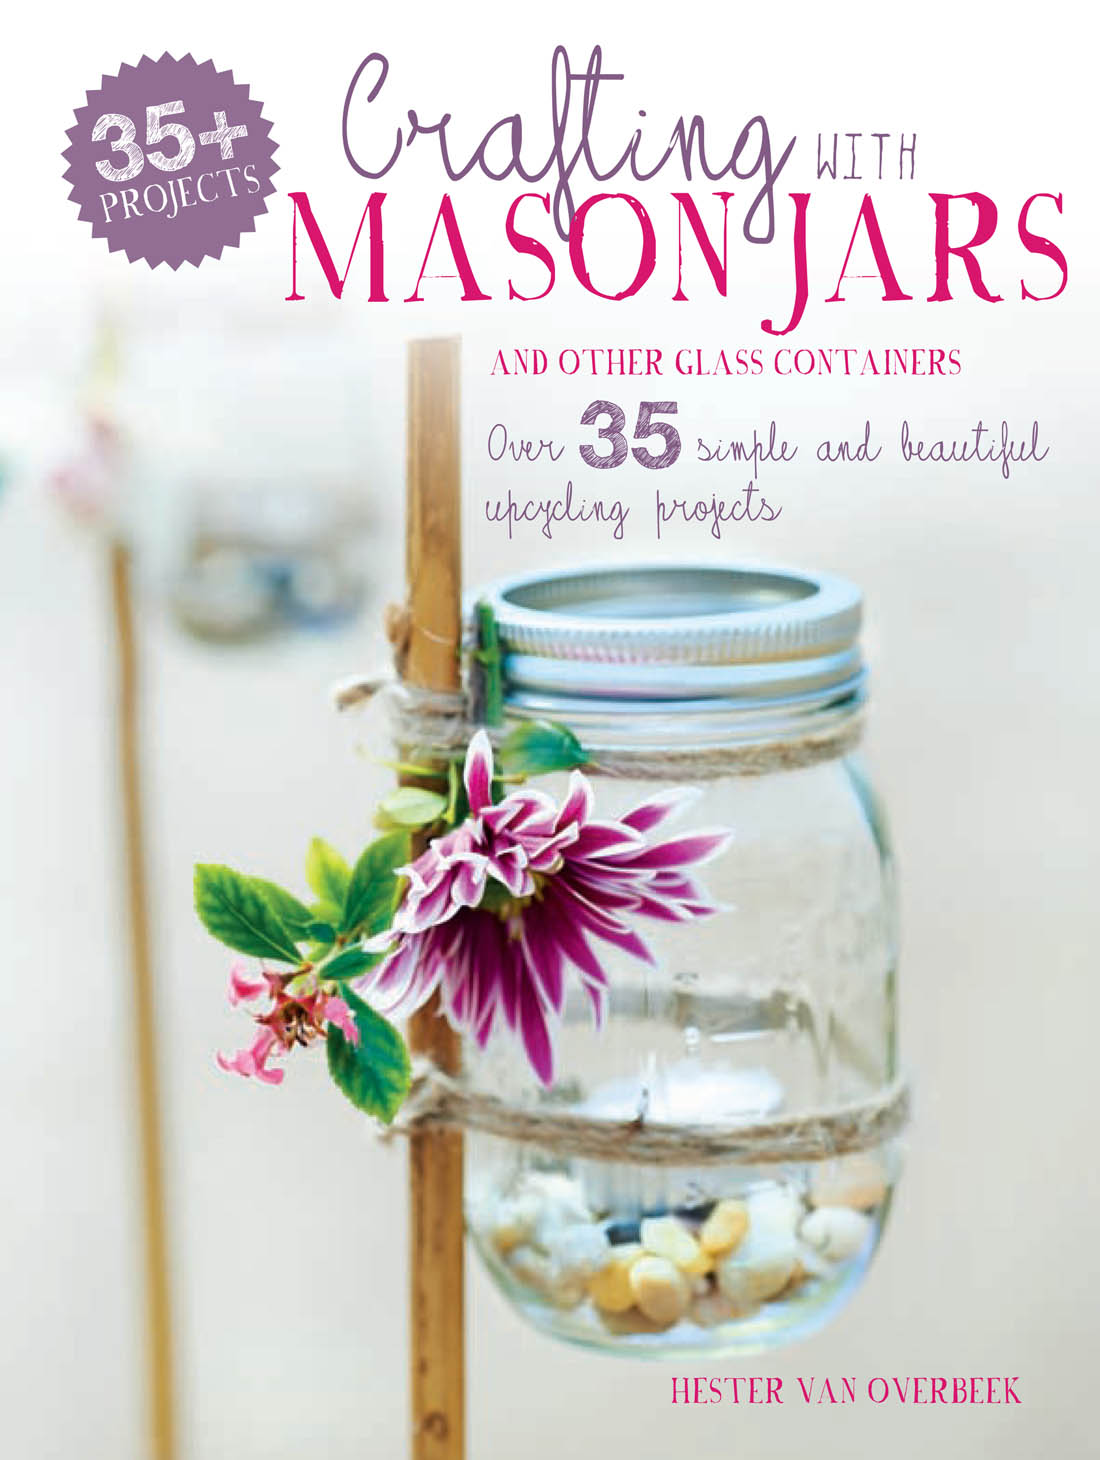 Crafting with mason jars | Book tour | A apartment Apothecary